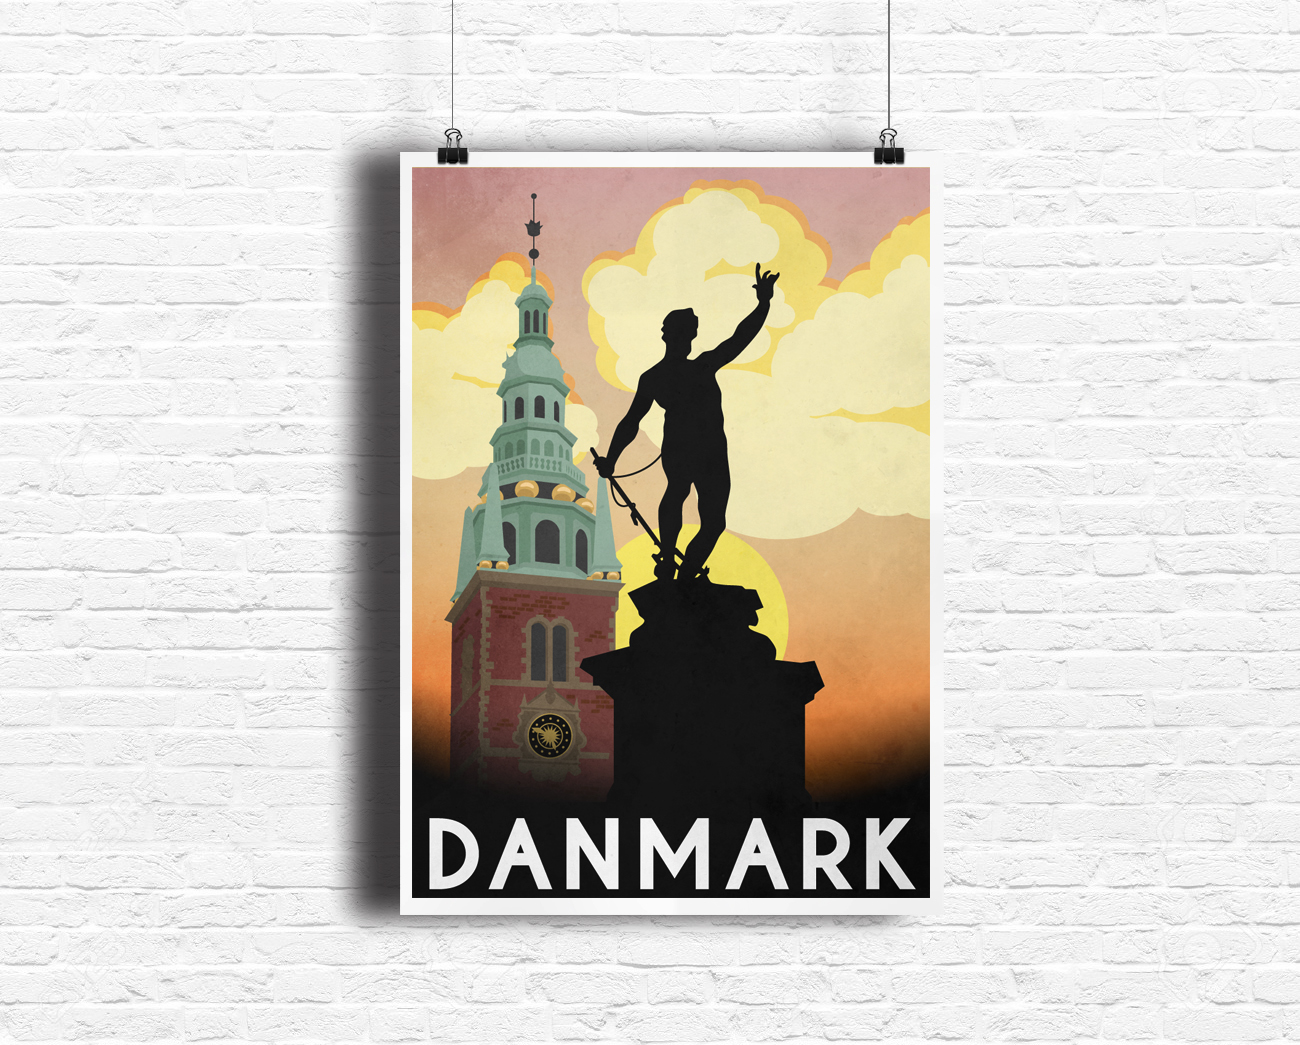 Denmark Travel Poster Design